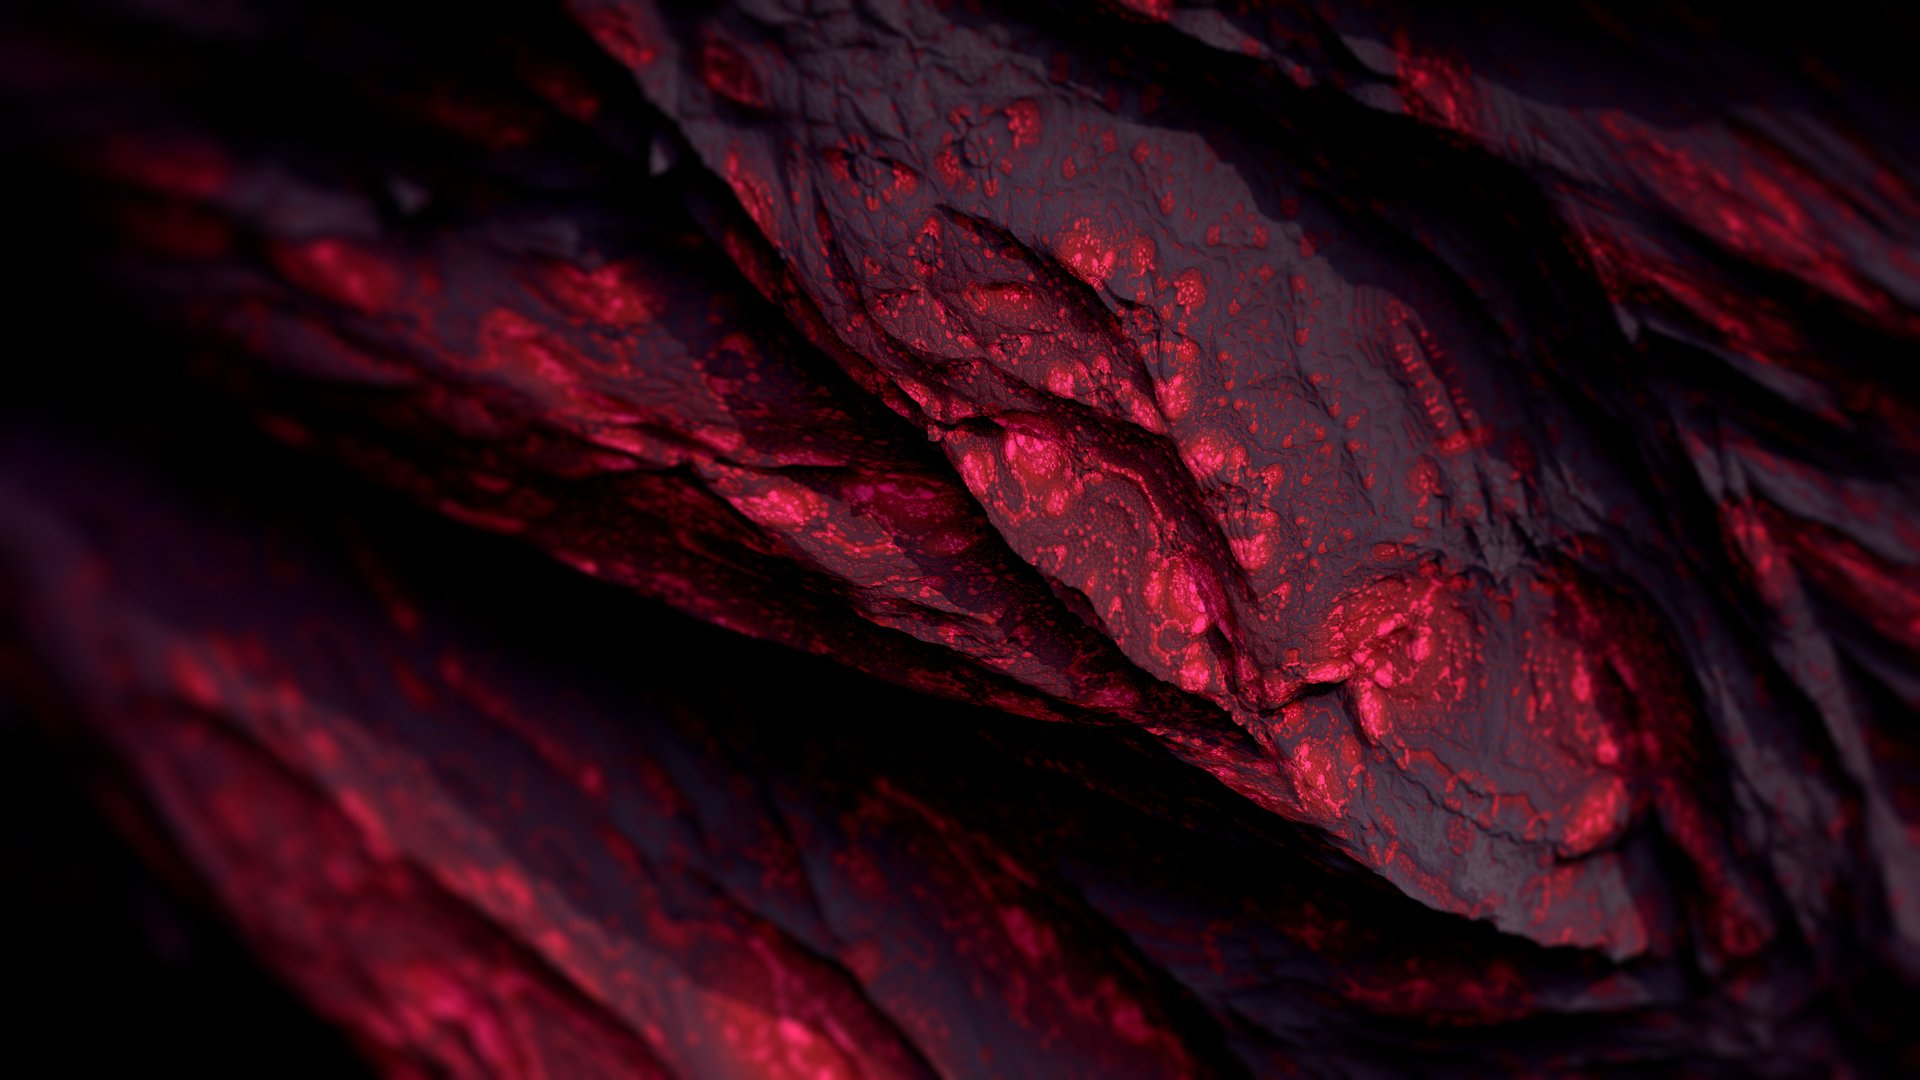 Red 3d mineral wallpaper 60559 1920x1080 px for 3d wallpaper red